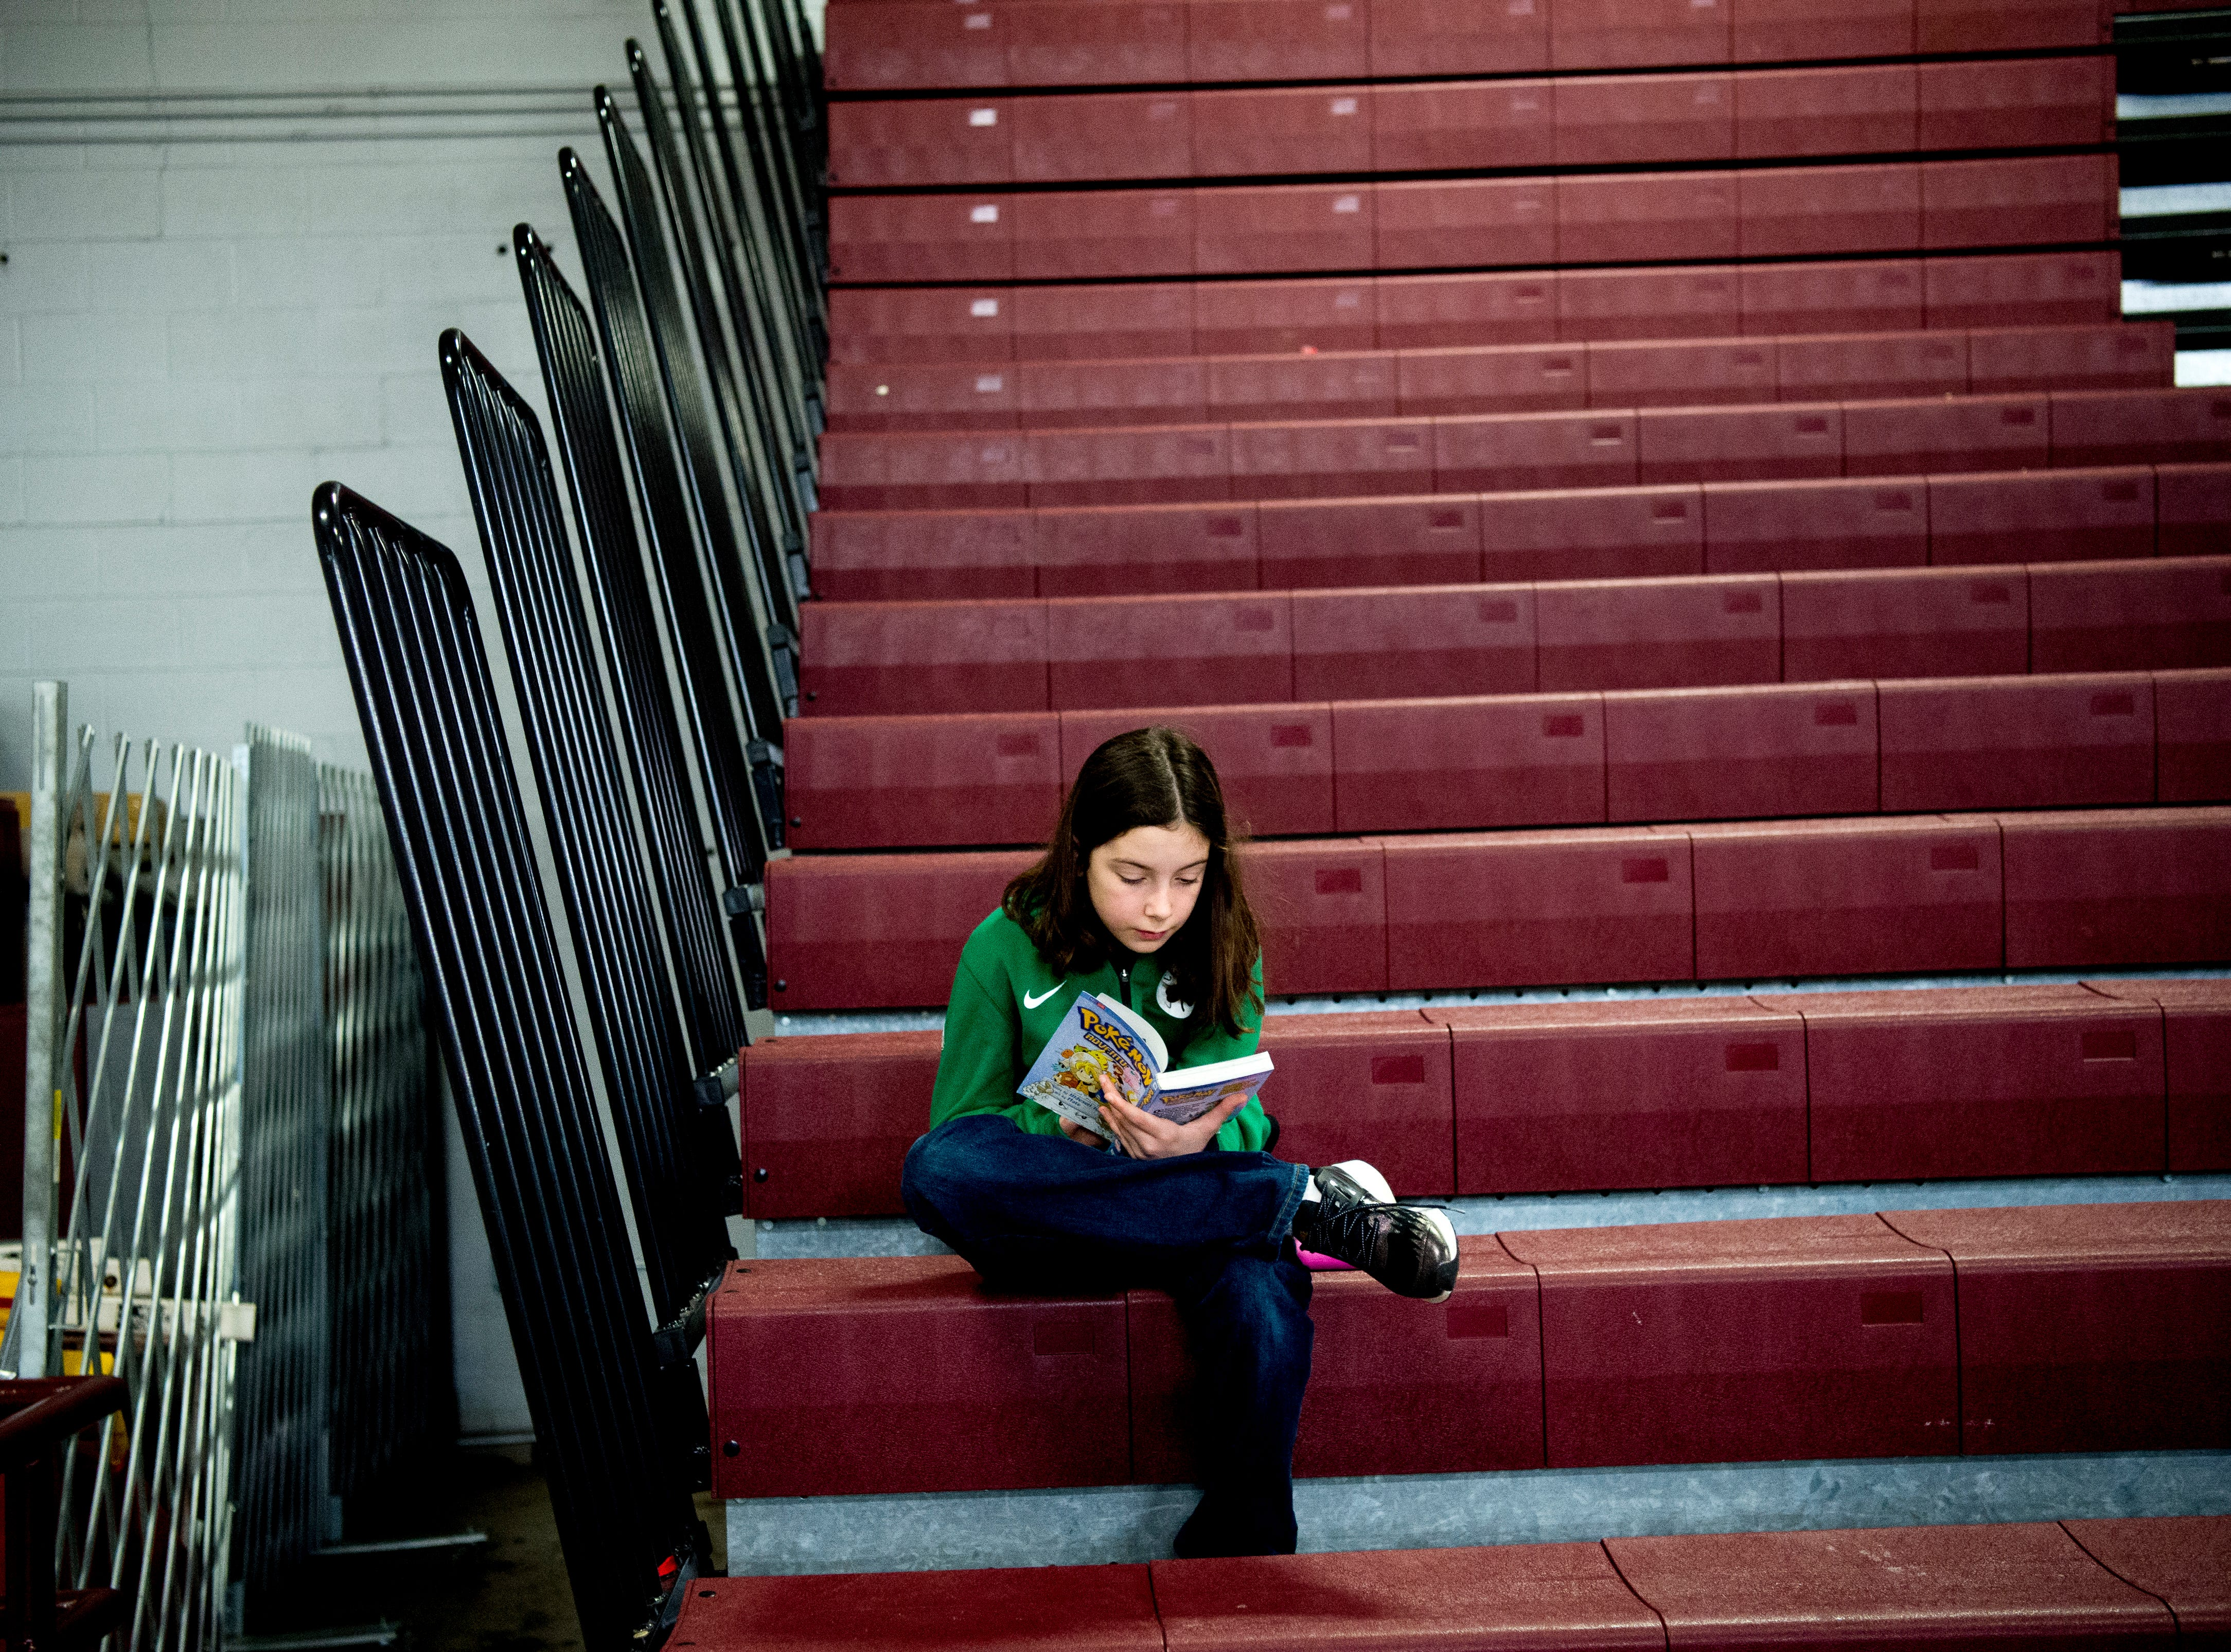 A girl finds a quiet space to read in the upper stands during a game between Bearden and Catholic at Bearden High School in Knoxville, Tennessee on Thursday, January 10, 2019.